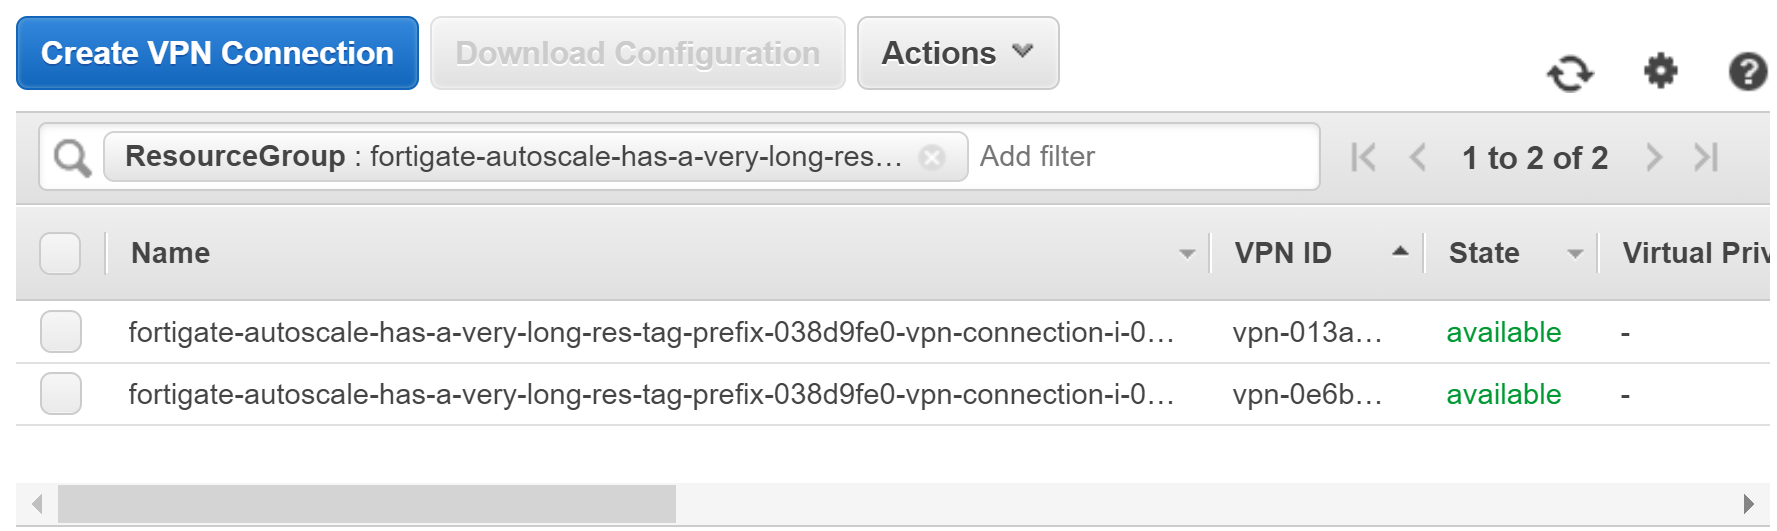 Filtered Site-to-Site VPN Connections